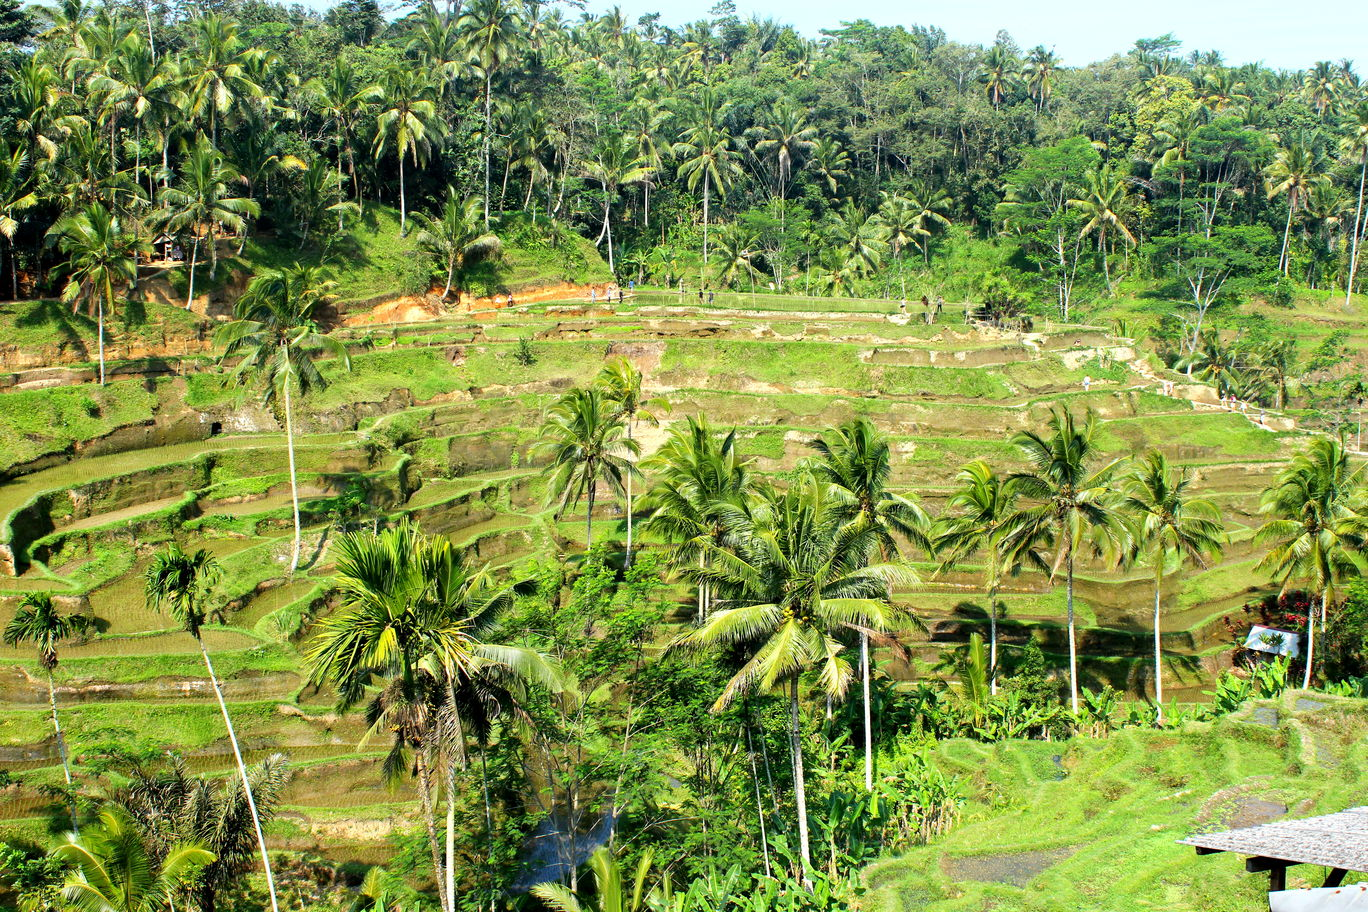 Photo of Tegallalang Rice Terrace By tamanna tripathy